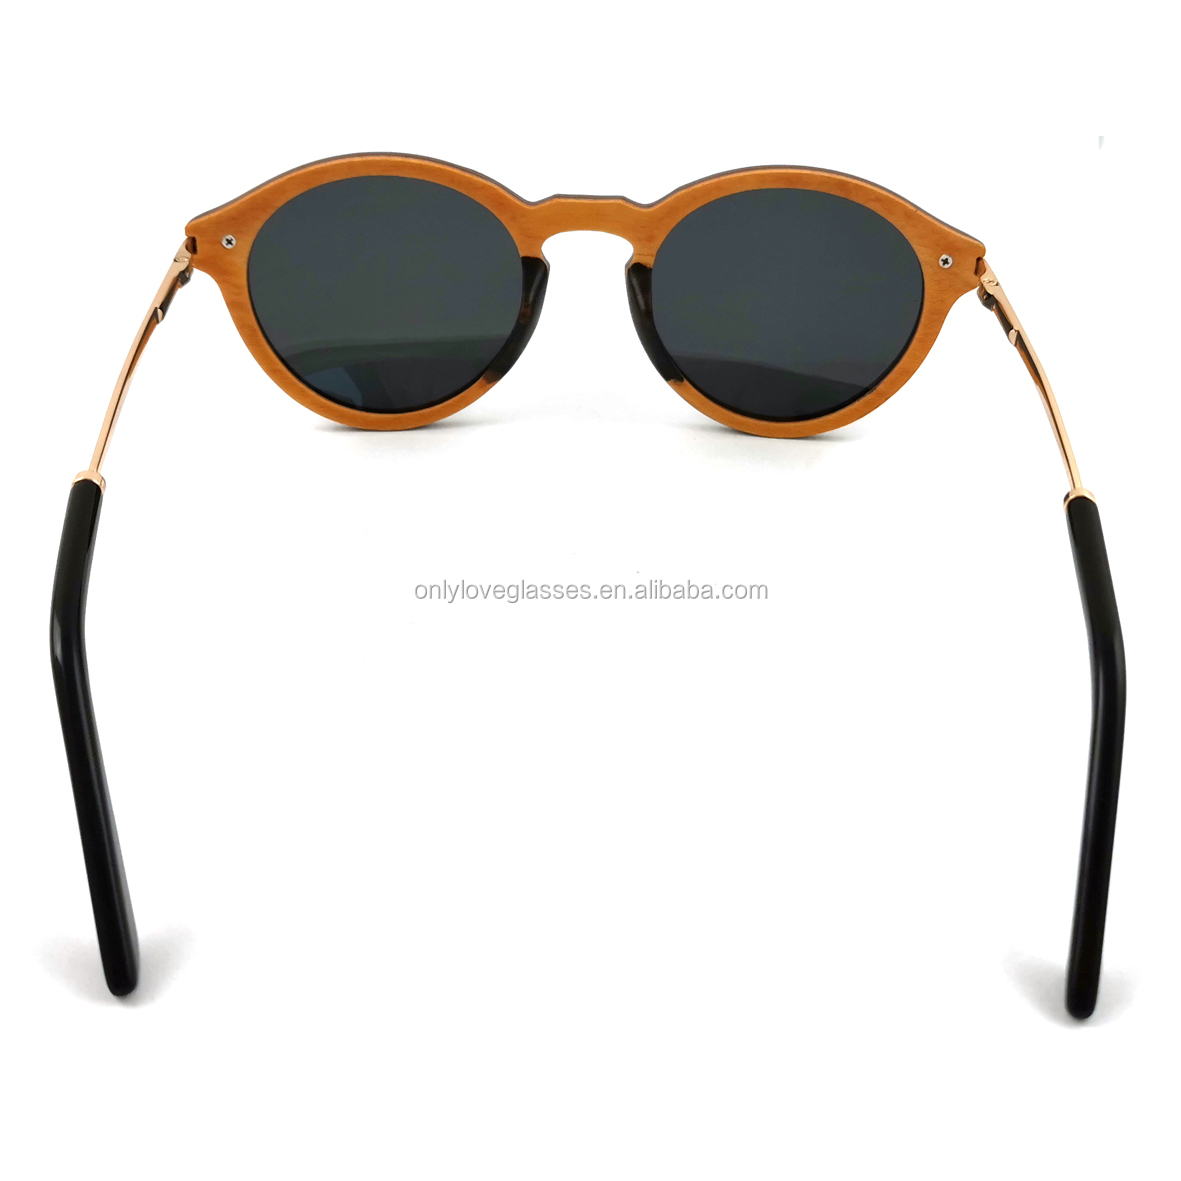 Skateboard wood sunglasses,wooden sunglasses metal temple,wooden sunglasses case